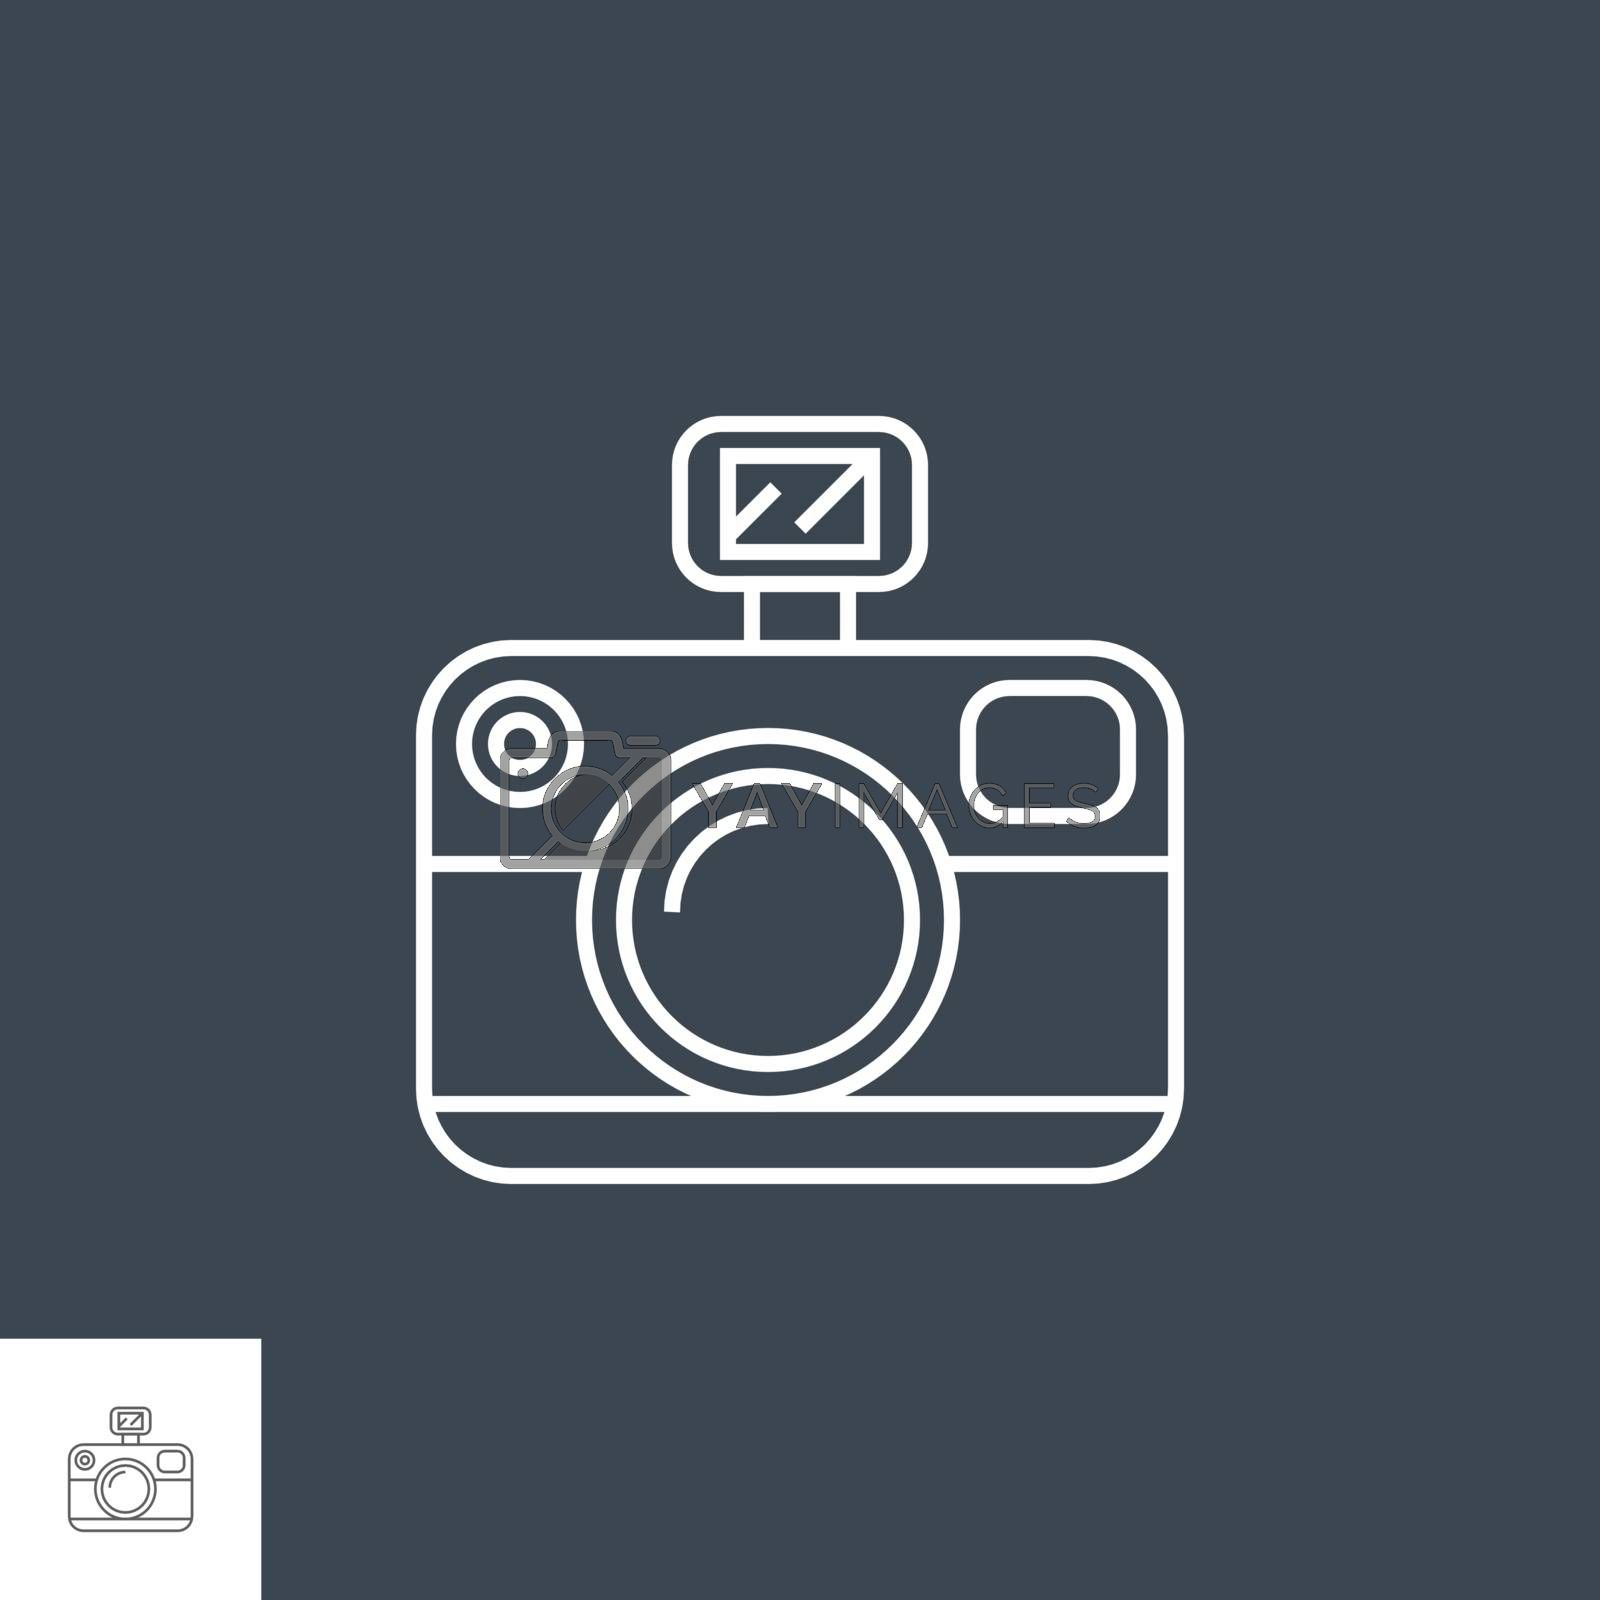 Photo Presentation Related Vector Thin Line Icon. Isolated on Black Background. Editable Stroke. Vector Illustration.